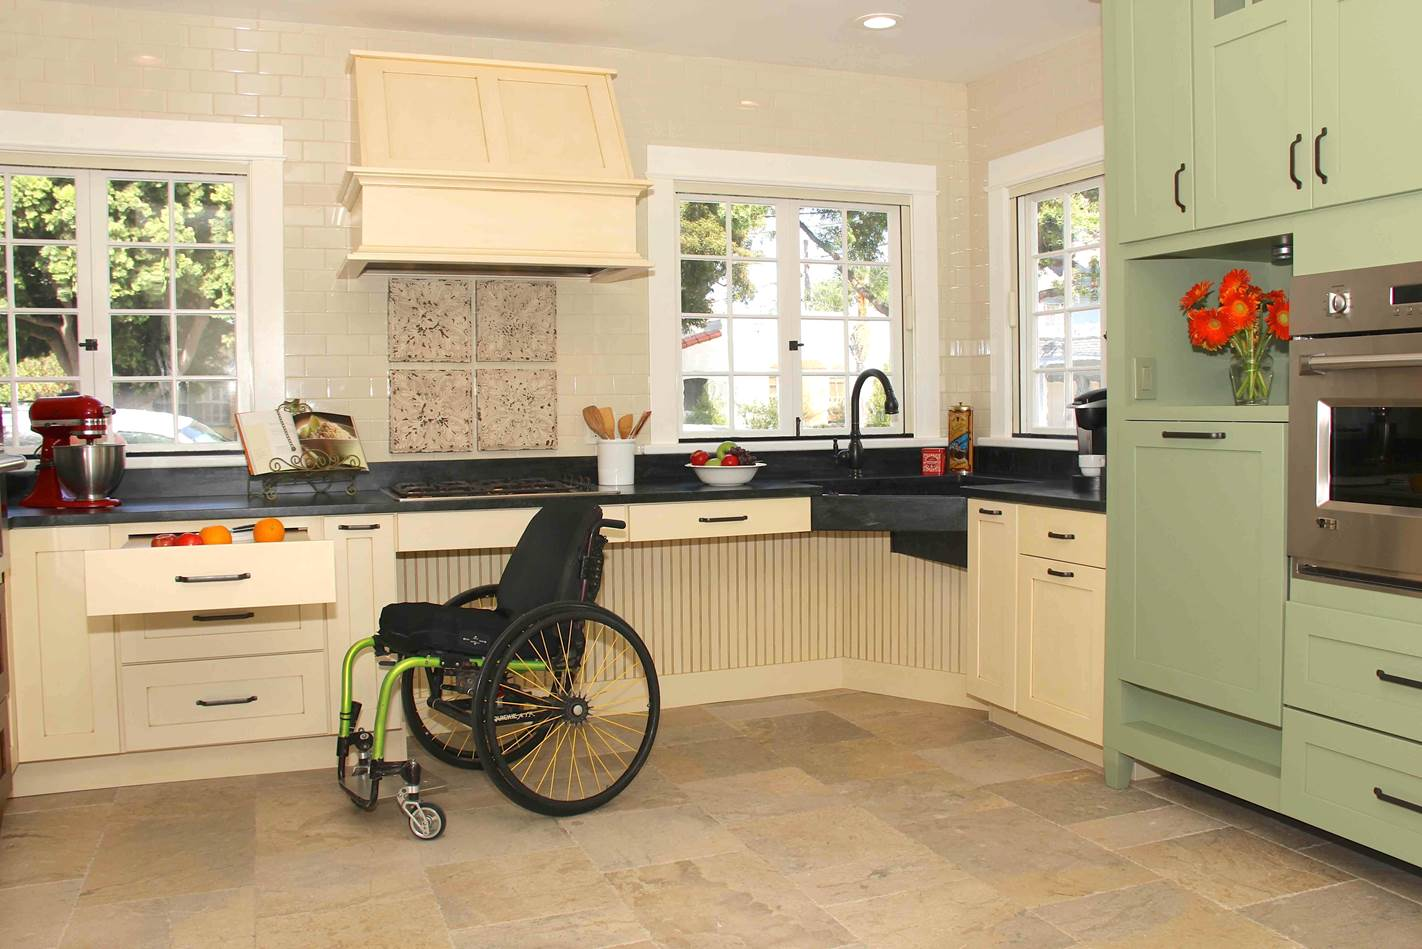 Universal design one size fits all for Accessible home design